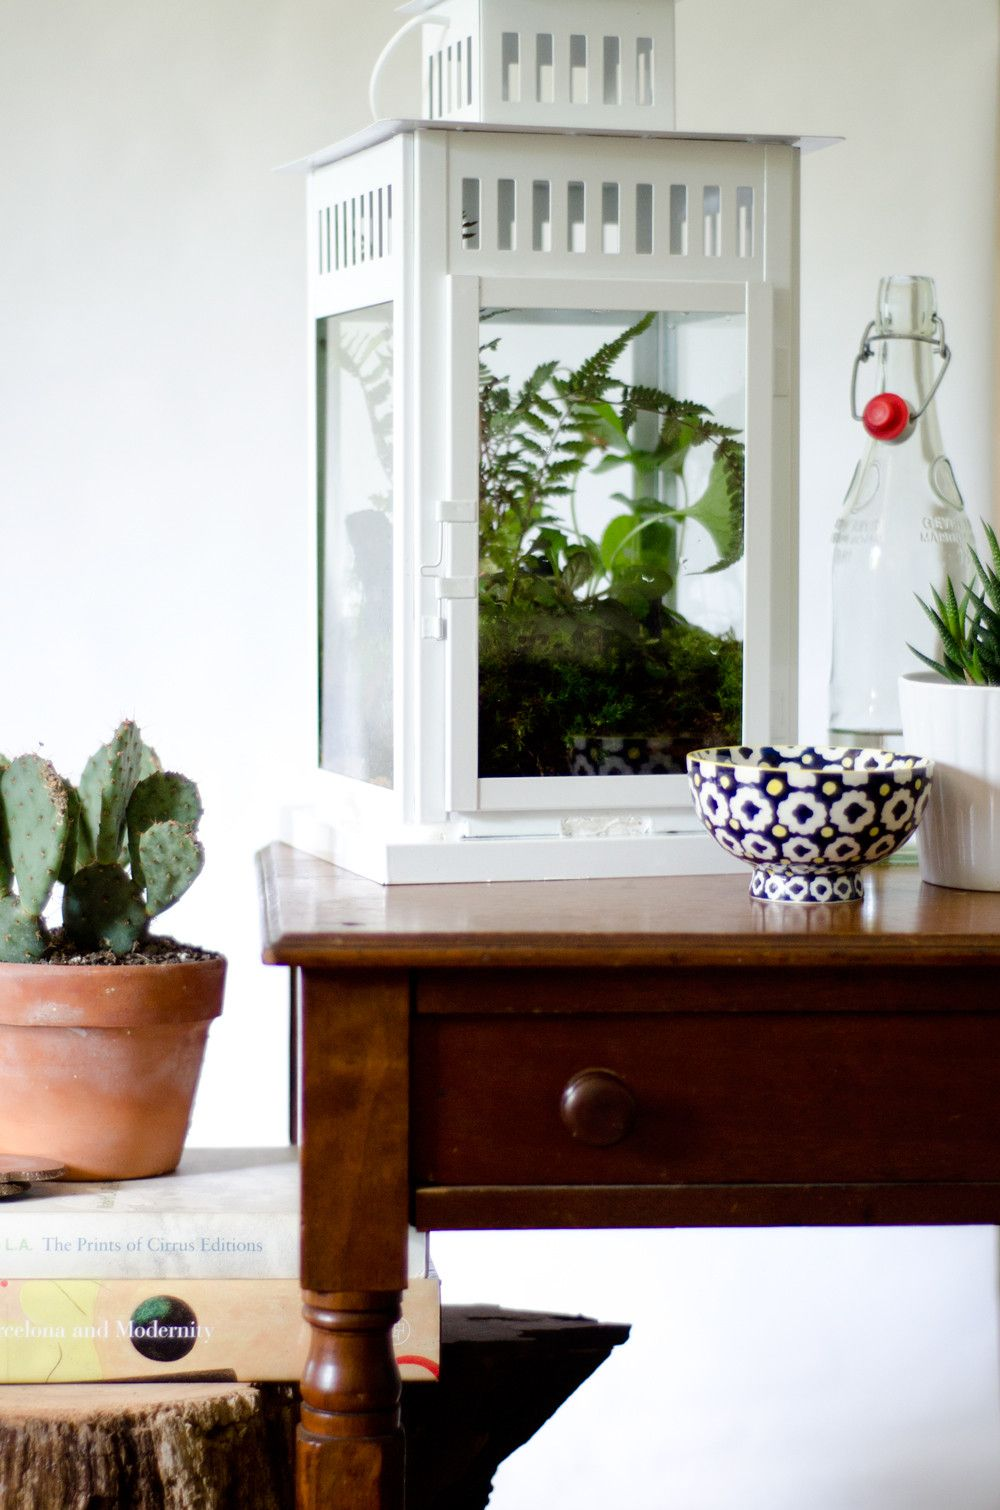 ikea white lantern hack - turned into a terrarium for a pop of green plants.